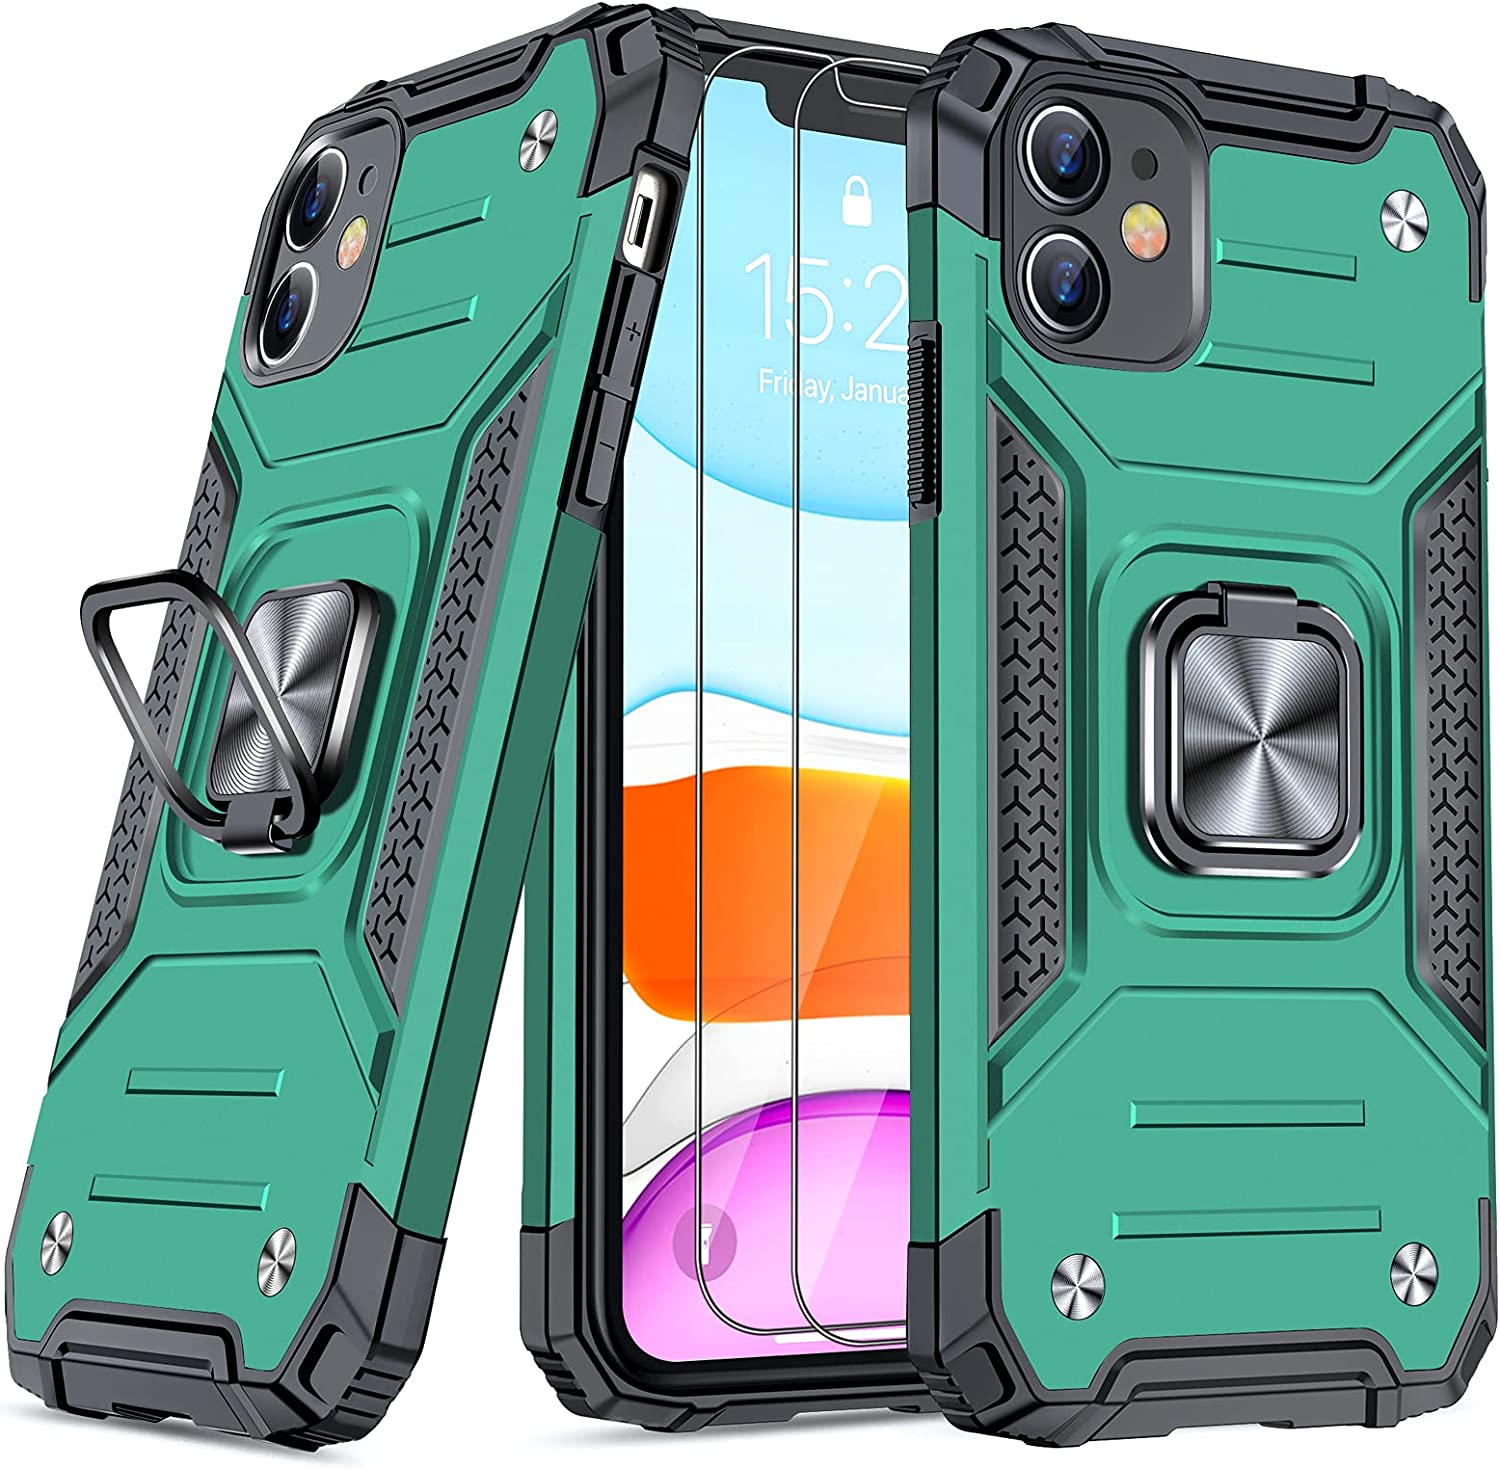 JAME Designed for iPhone 11 Case with Screen Protector 2PCS, Military-Grade Drop Protection, Protective Phone Cases, with Ring Kickstand Shockproof Bumper Case for iPhone 11 6.1 Inch Green